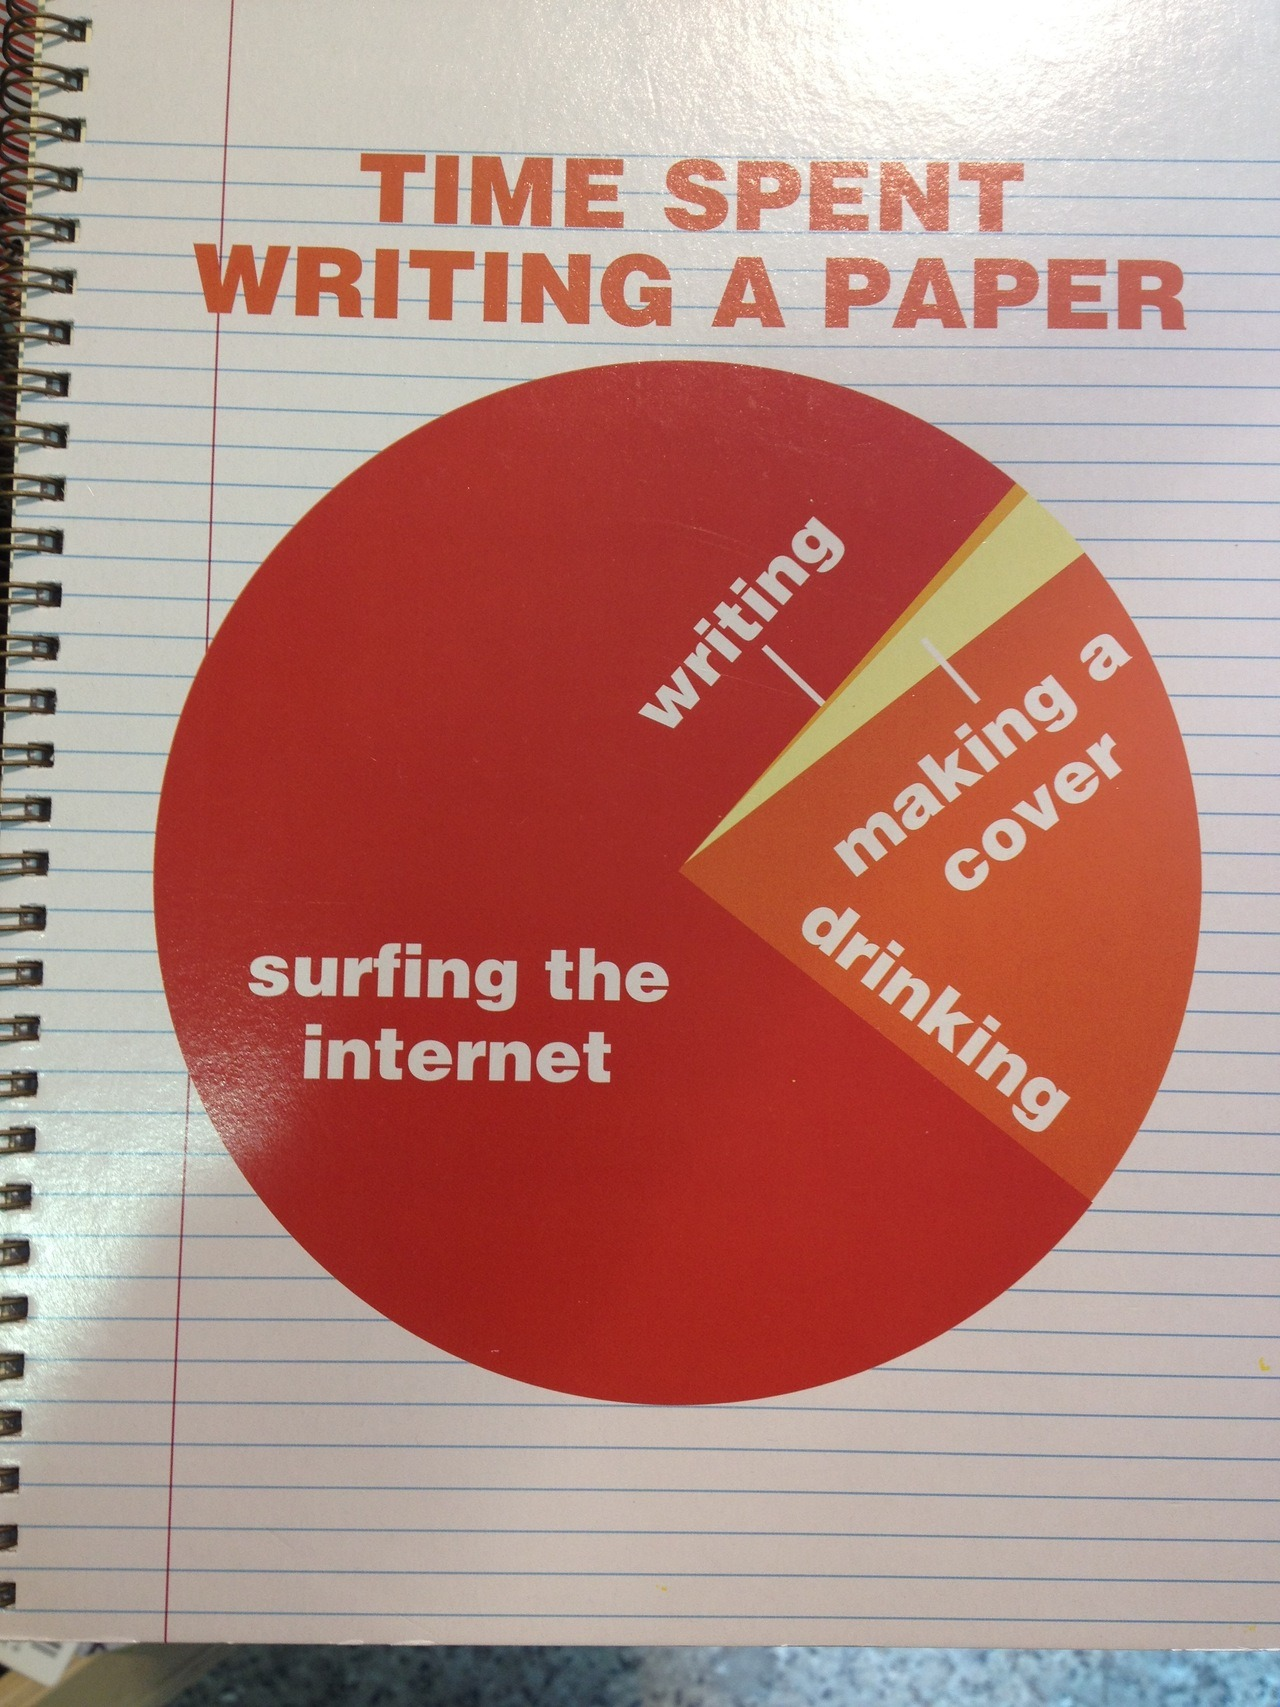 How to write a paper, according to this notebook at Urban Outfitters. -typesetpages You know what else you can find at Urban Outfitters?! This.